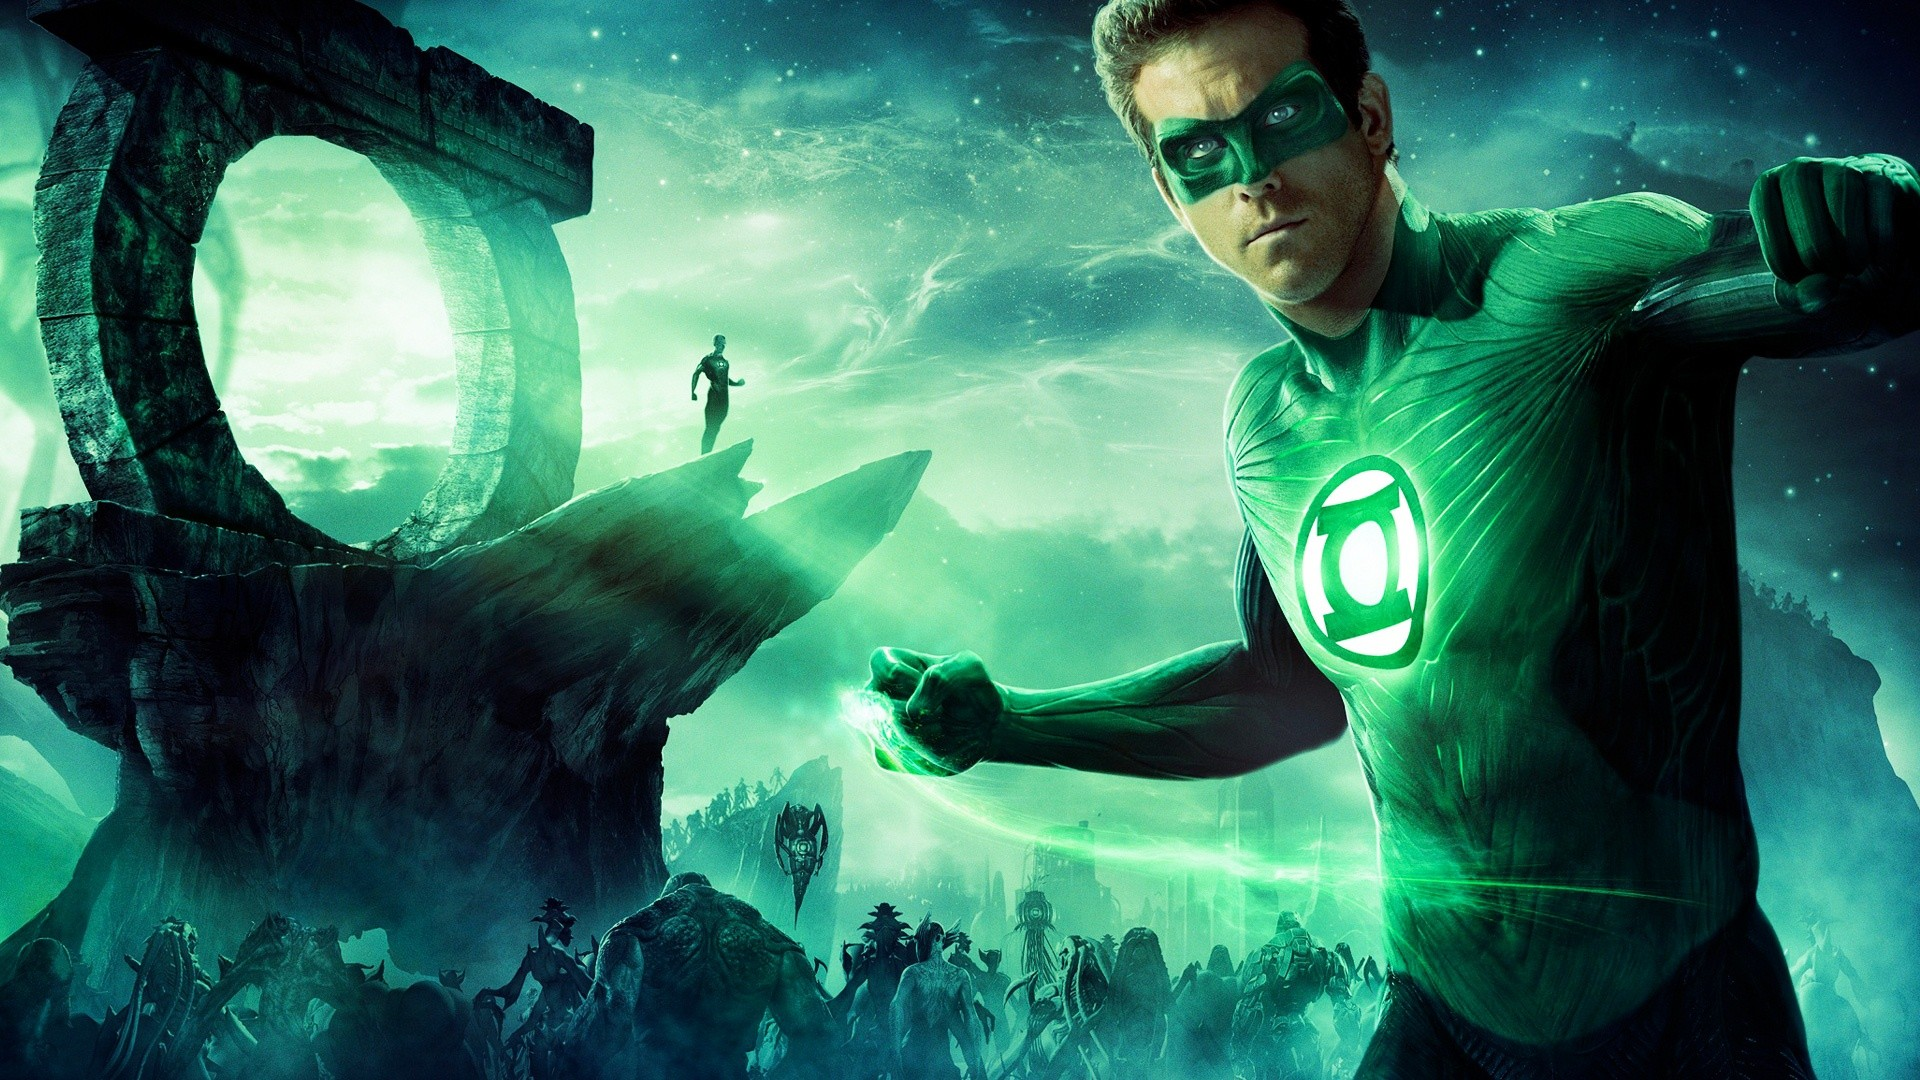 Green Lantern Movie Wallpapers HD Wallpapers 4k High 1920x1080